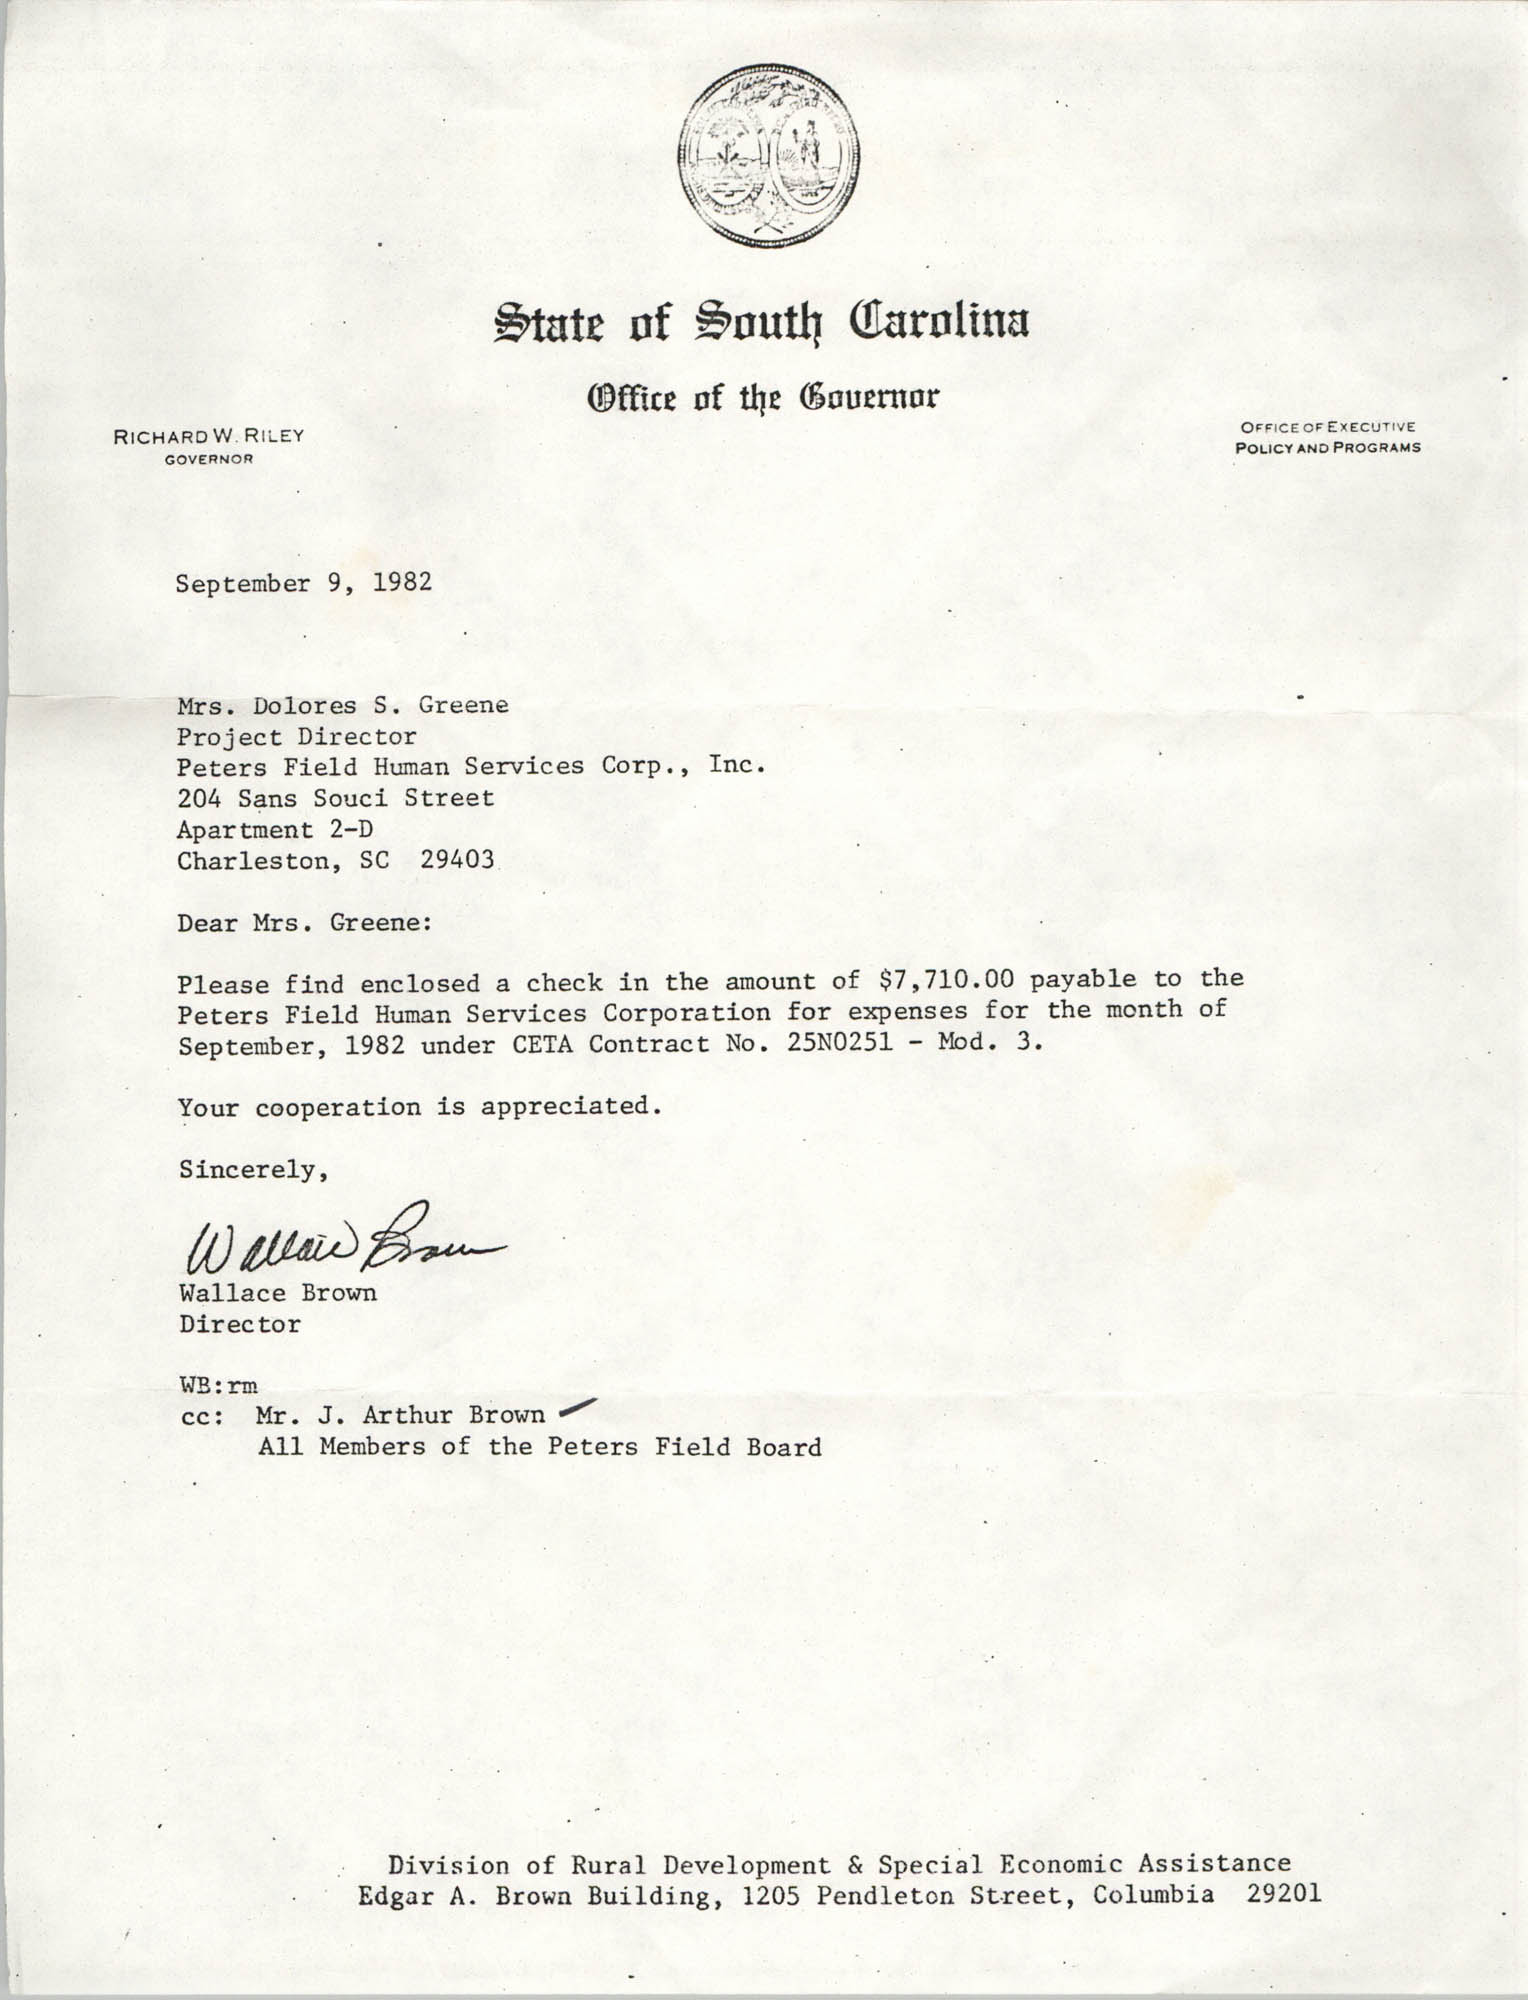 Letter from Wallace Brown to Dolores S. Greene, September 9, 1982